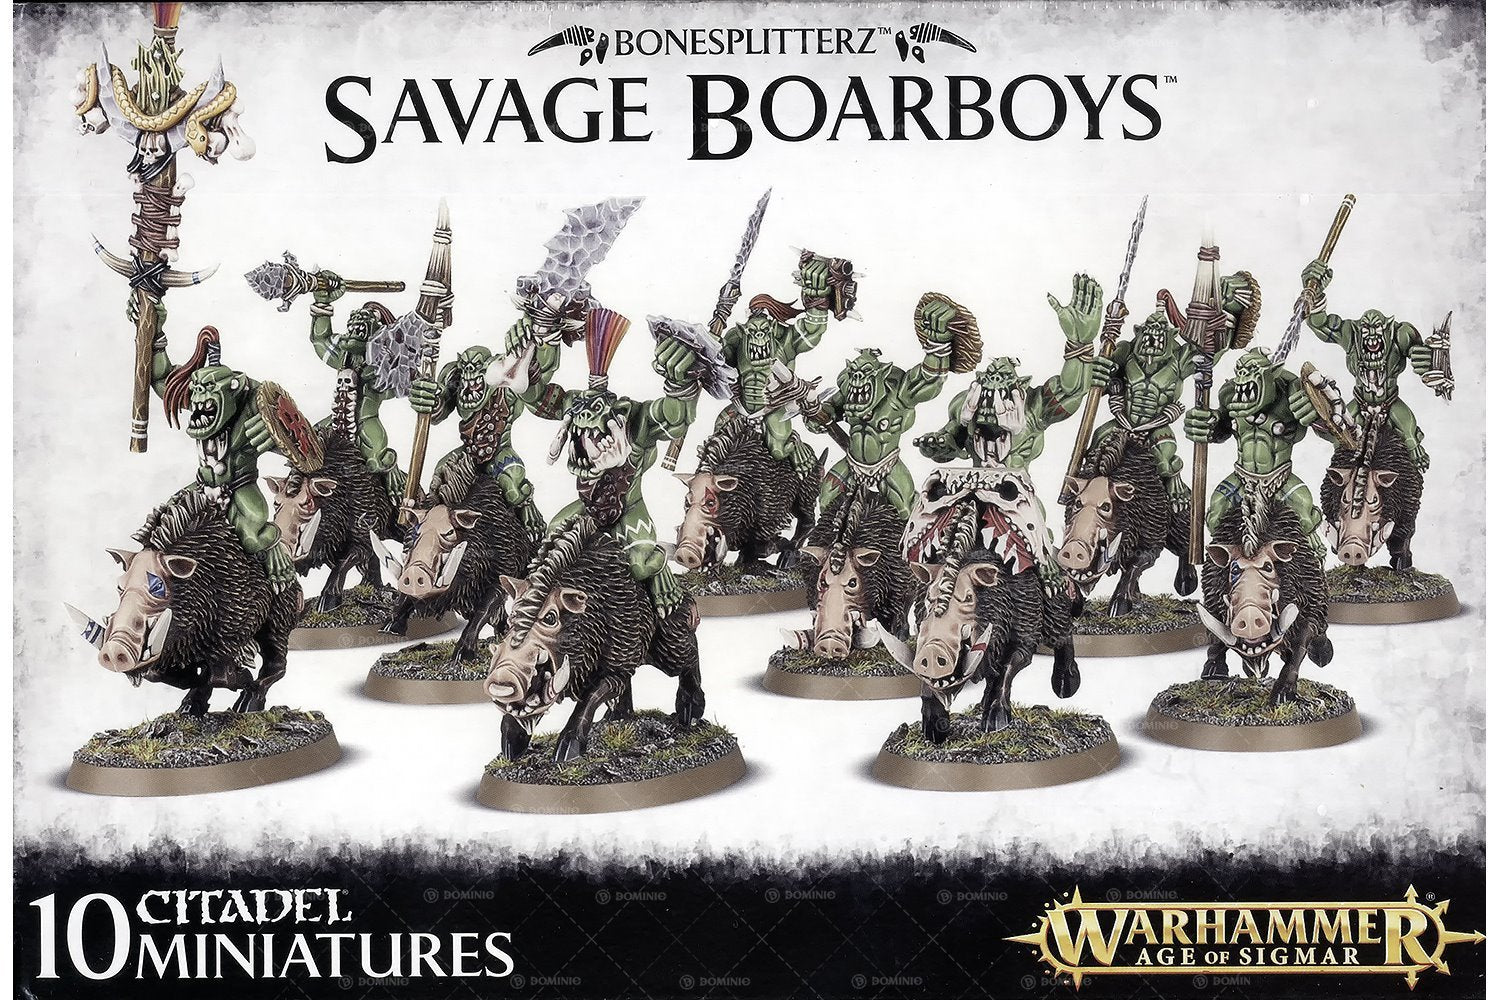 Warhammer Age Of Sigmar: Bonesplitterz Savage Boarboys (89-20) - Pastime Sports & Games